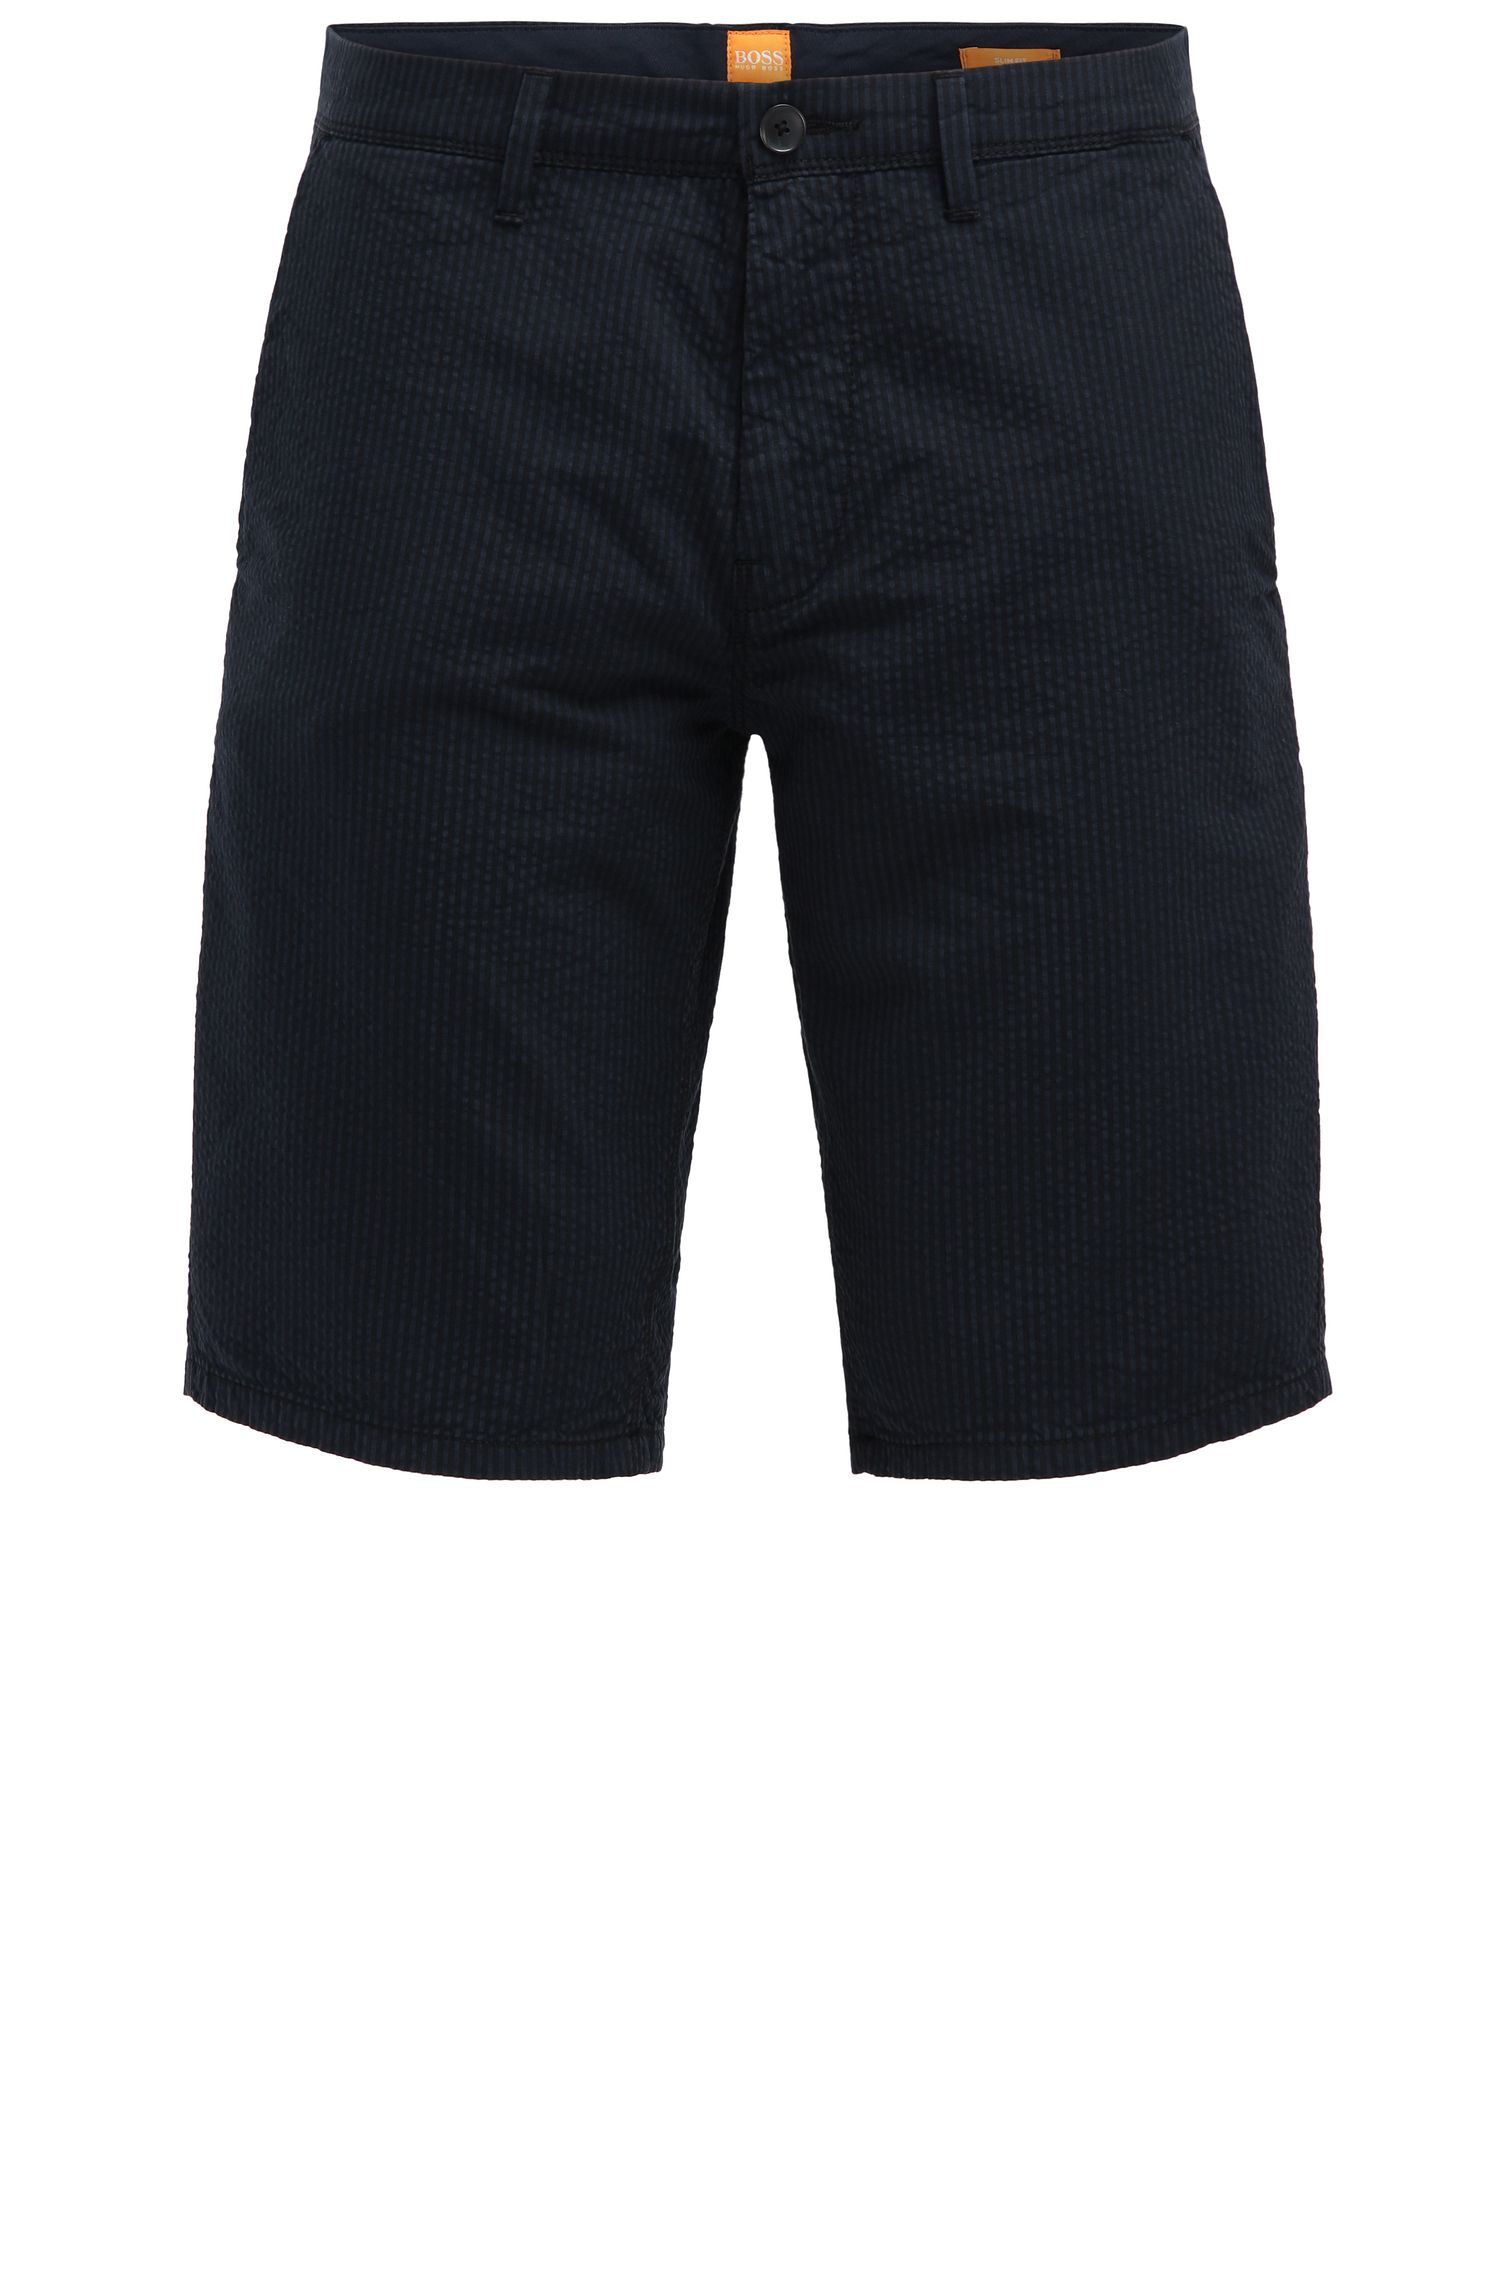 'Slender Shorts W' | Seersucker Cotton Shorts